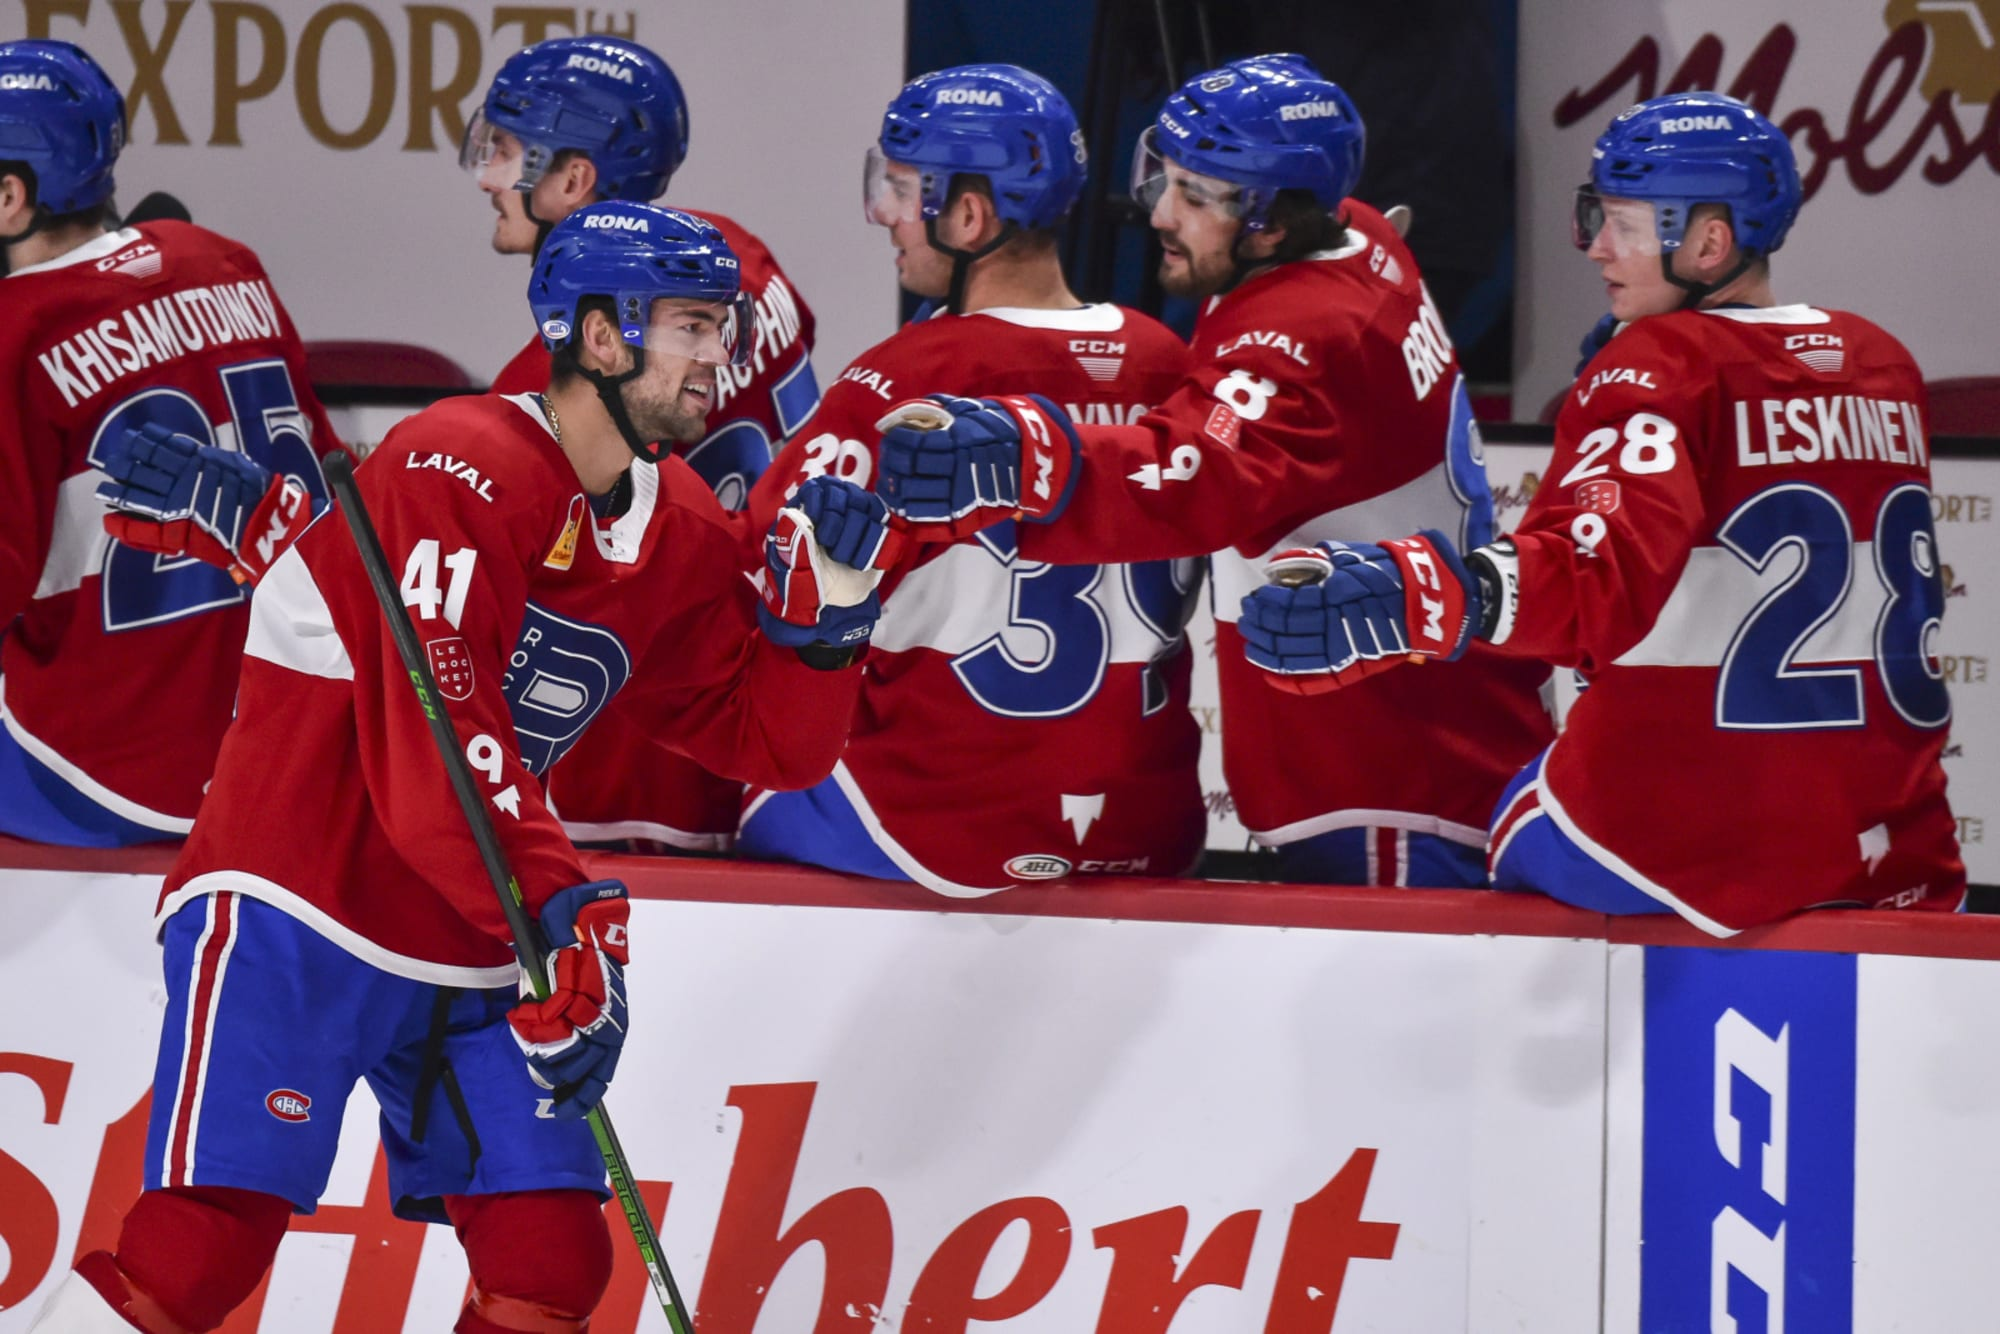 Montreal Canadiens: Numerous Additions Make up Busy Week on the Farm